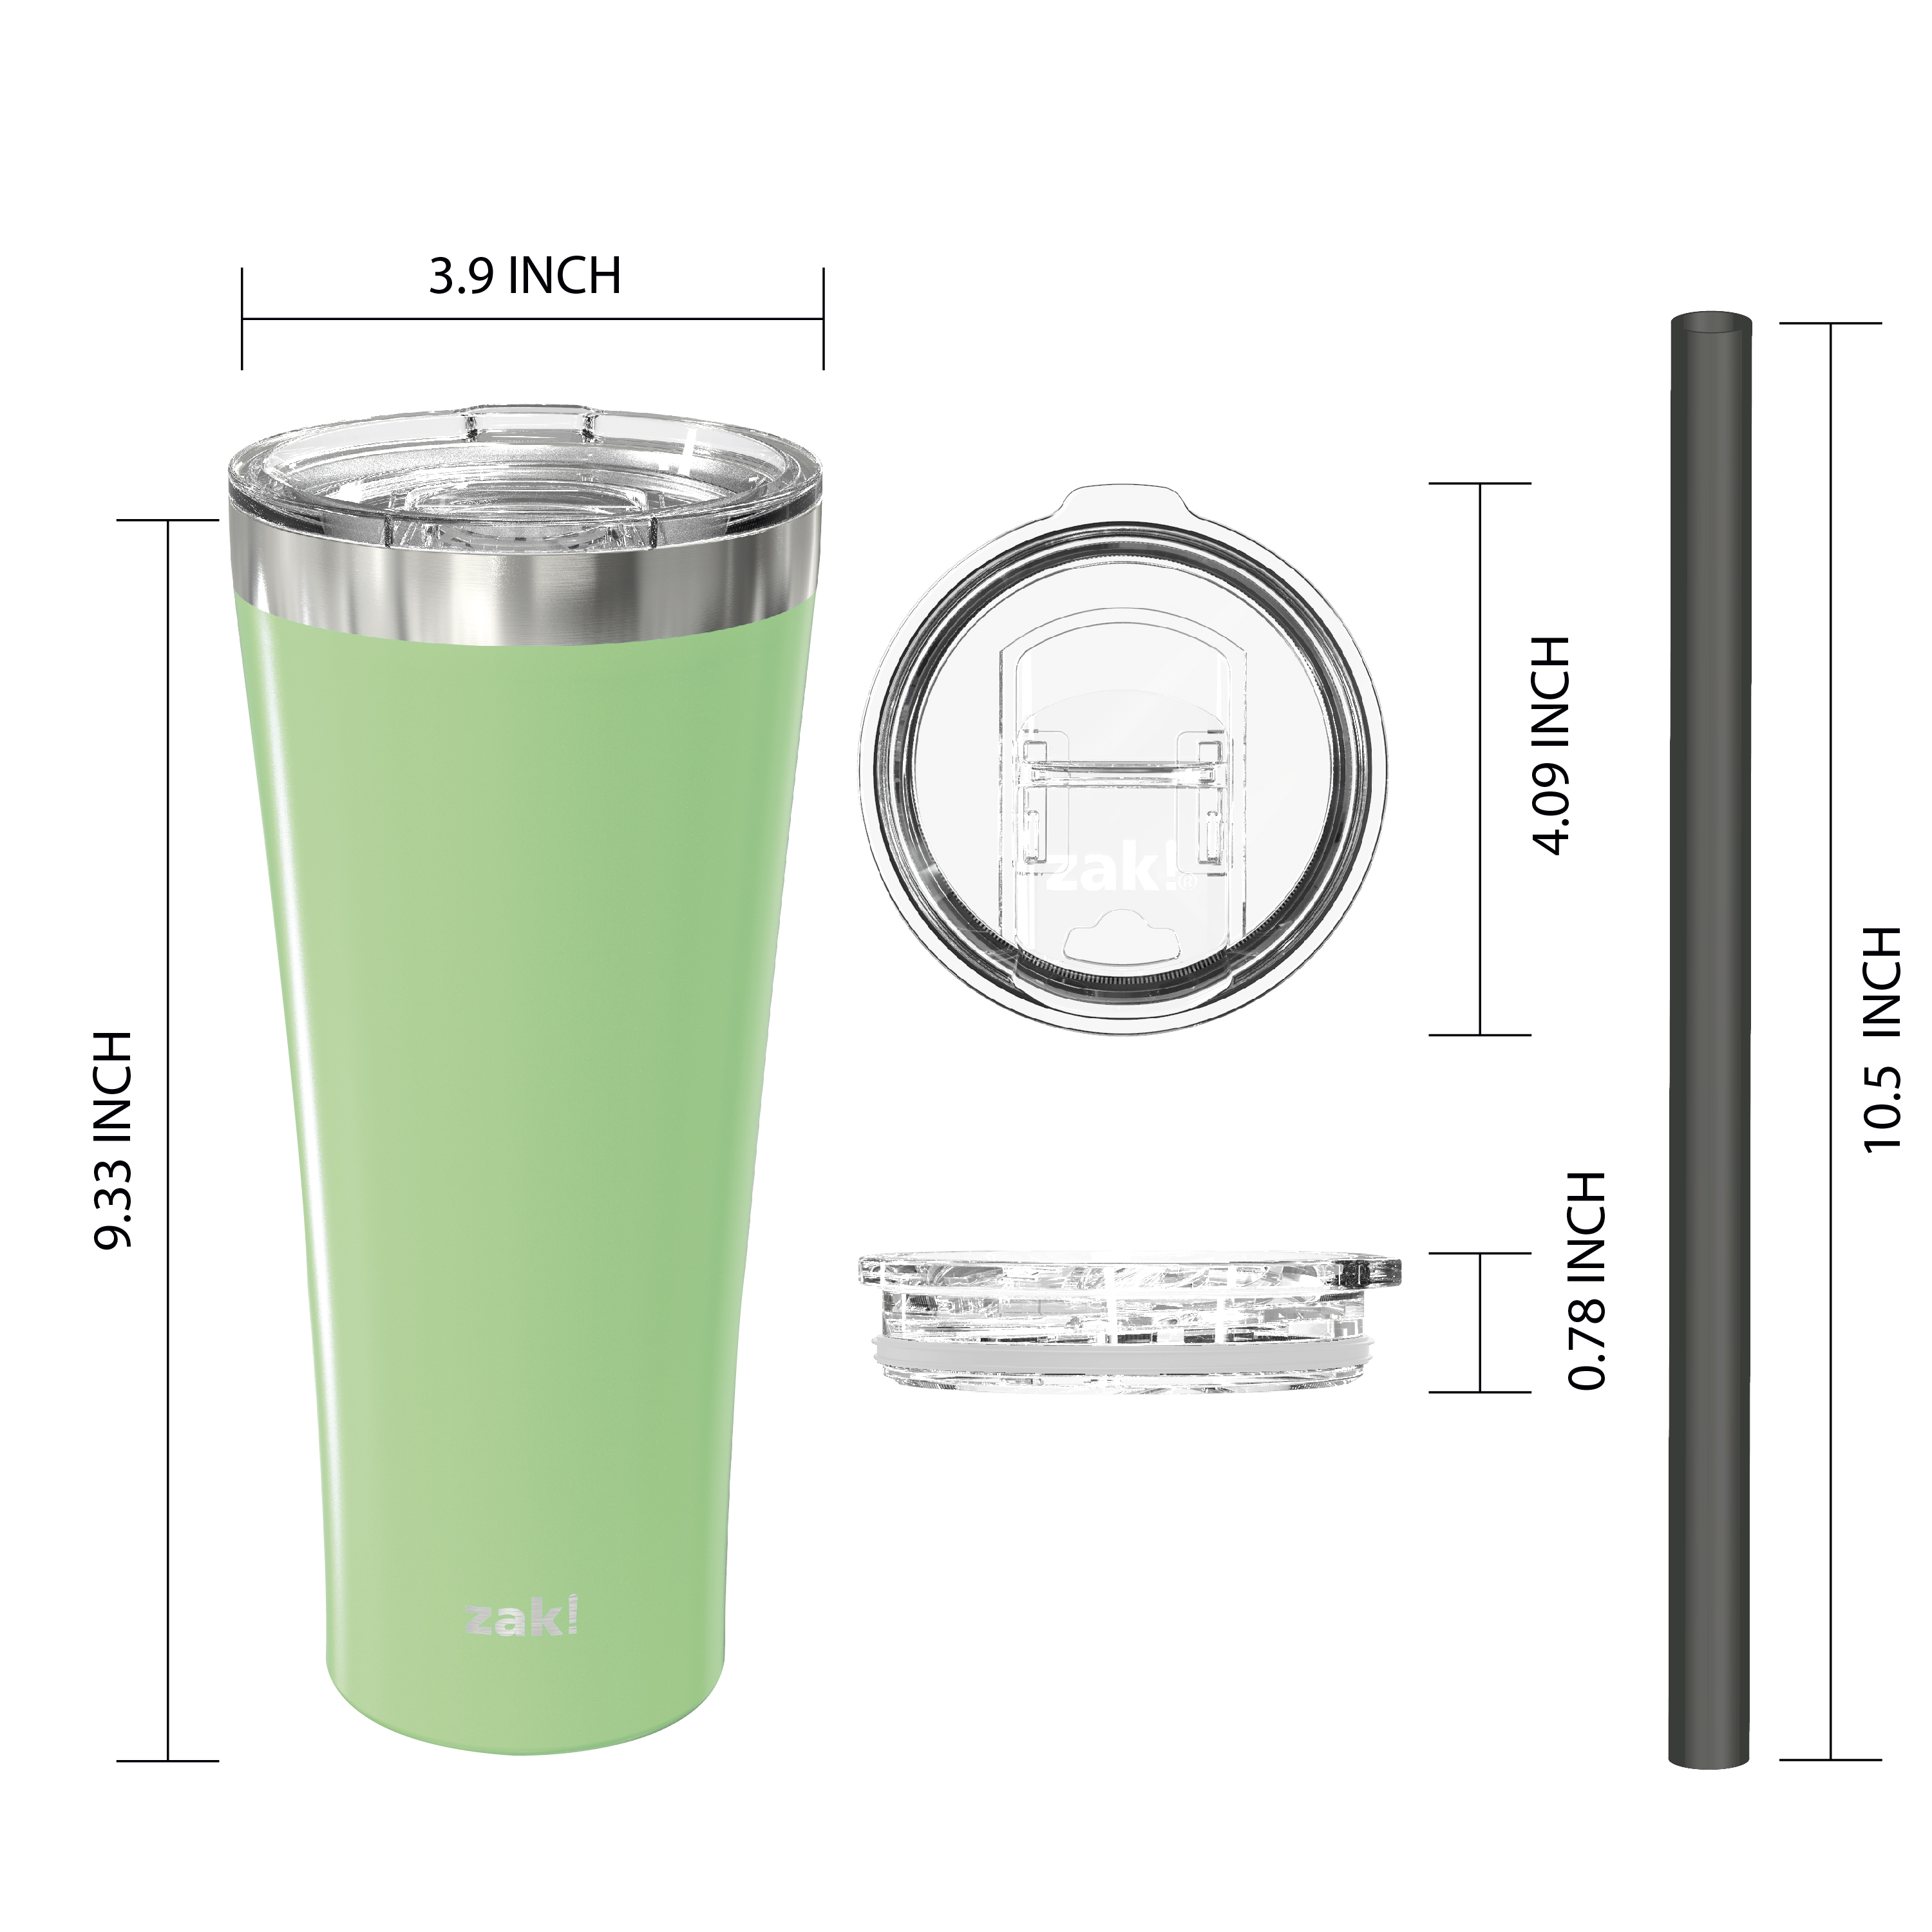 Alpine 30 ounce Stainless Steel Vacuum Insulated Tumbler with Straw, Neo Mint slideshow image 2